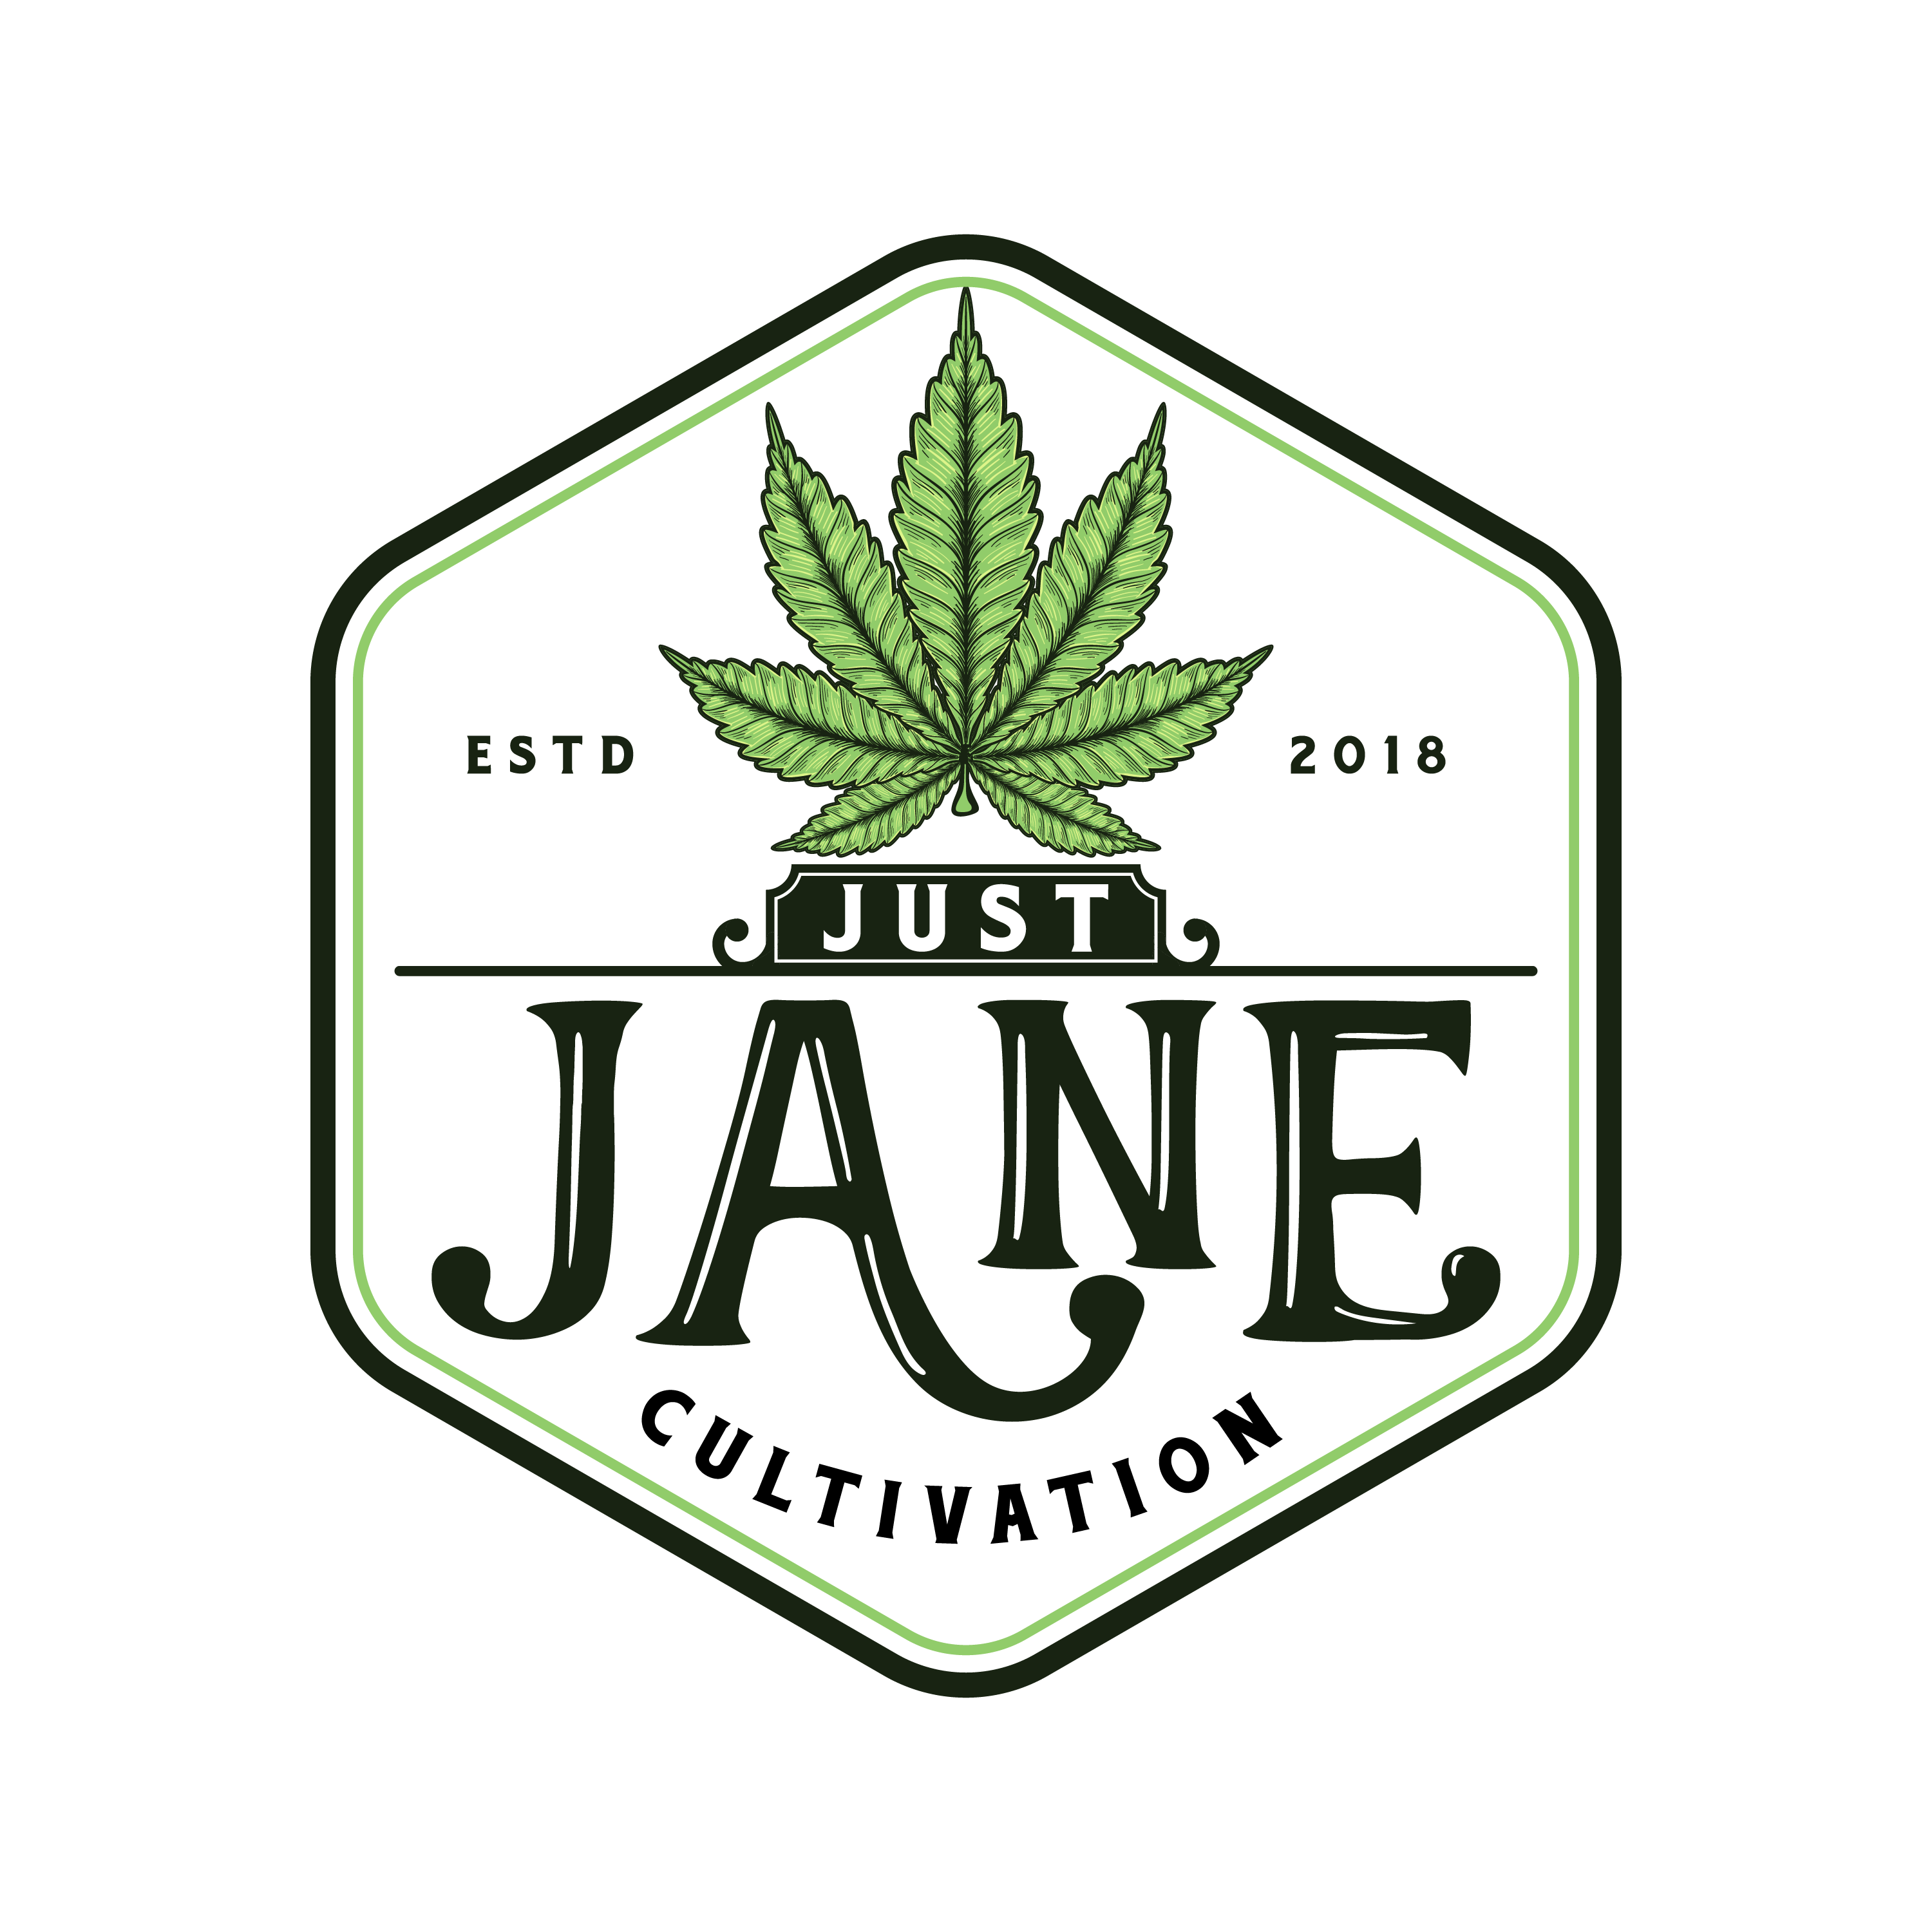 Just Jane Logo Design